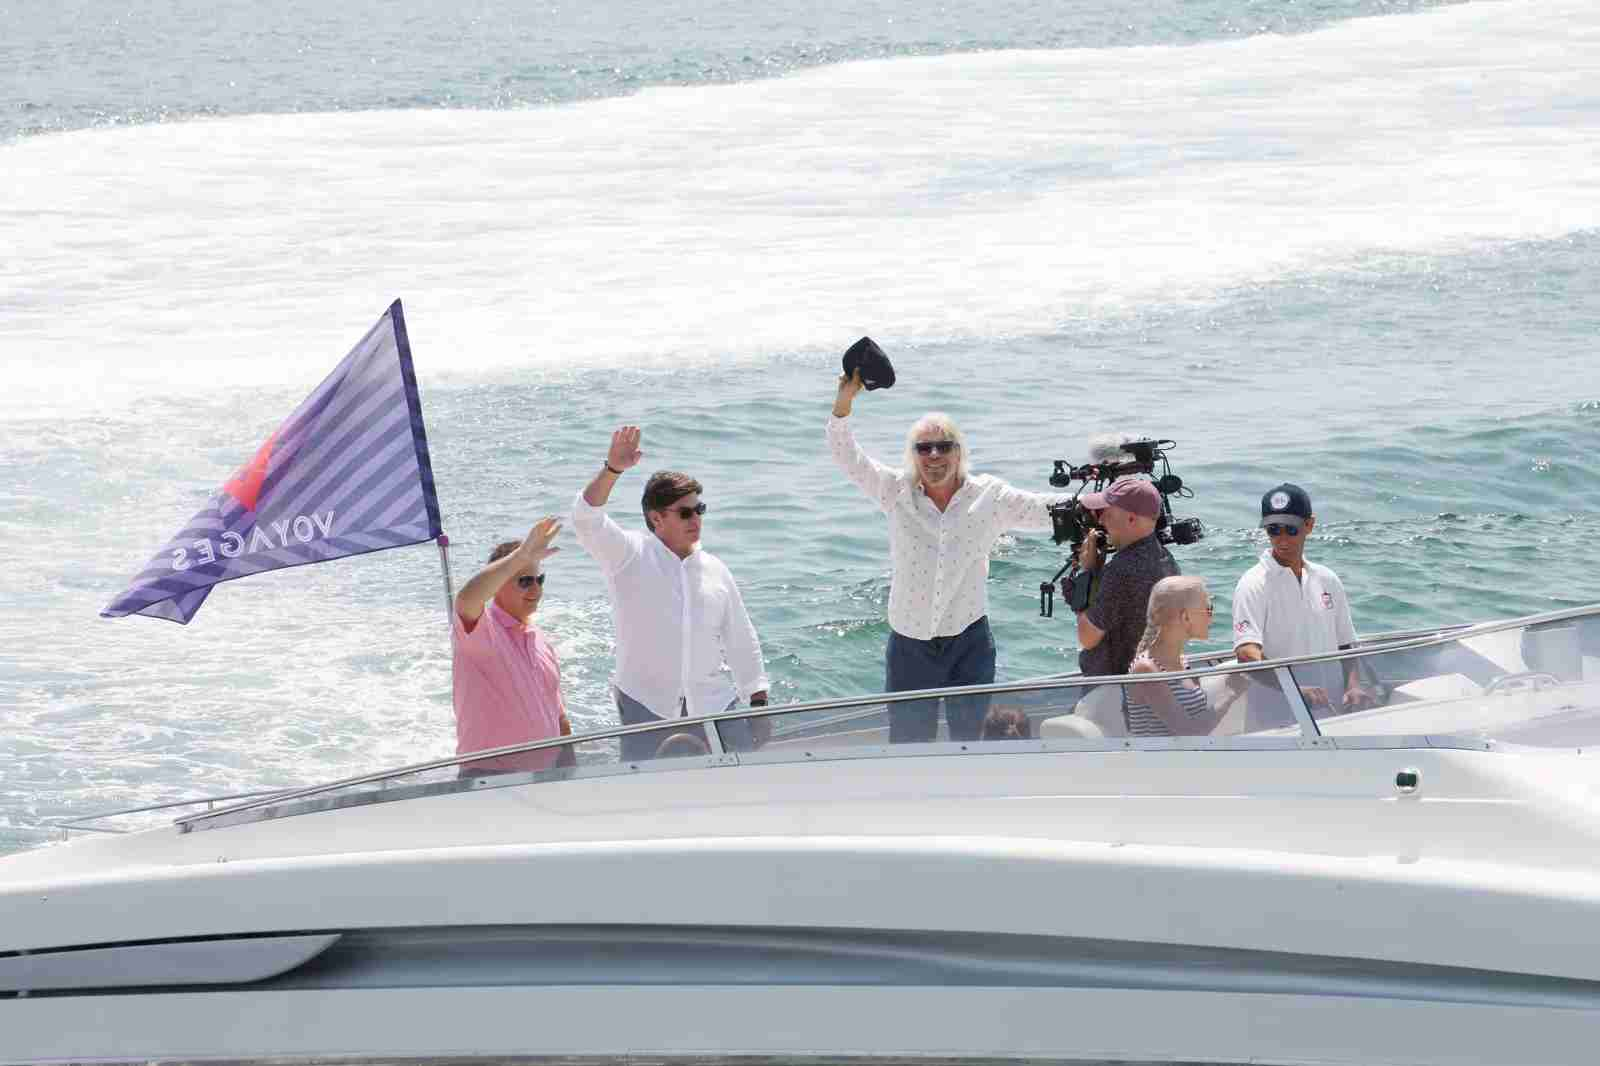 Sir Richard Branson unveiling Virgin Voyages Vitamin Sea in Genoa, Italy. (Photo by Vincenzo Lombardo/Getty Images for VIRGIN VOYAGES)